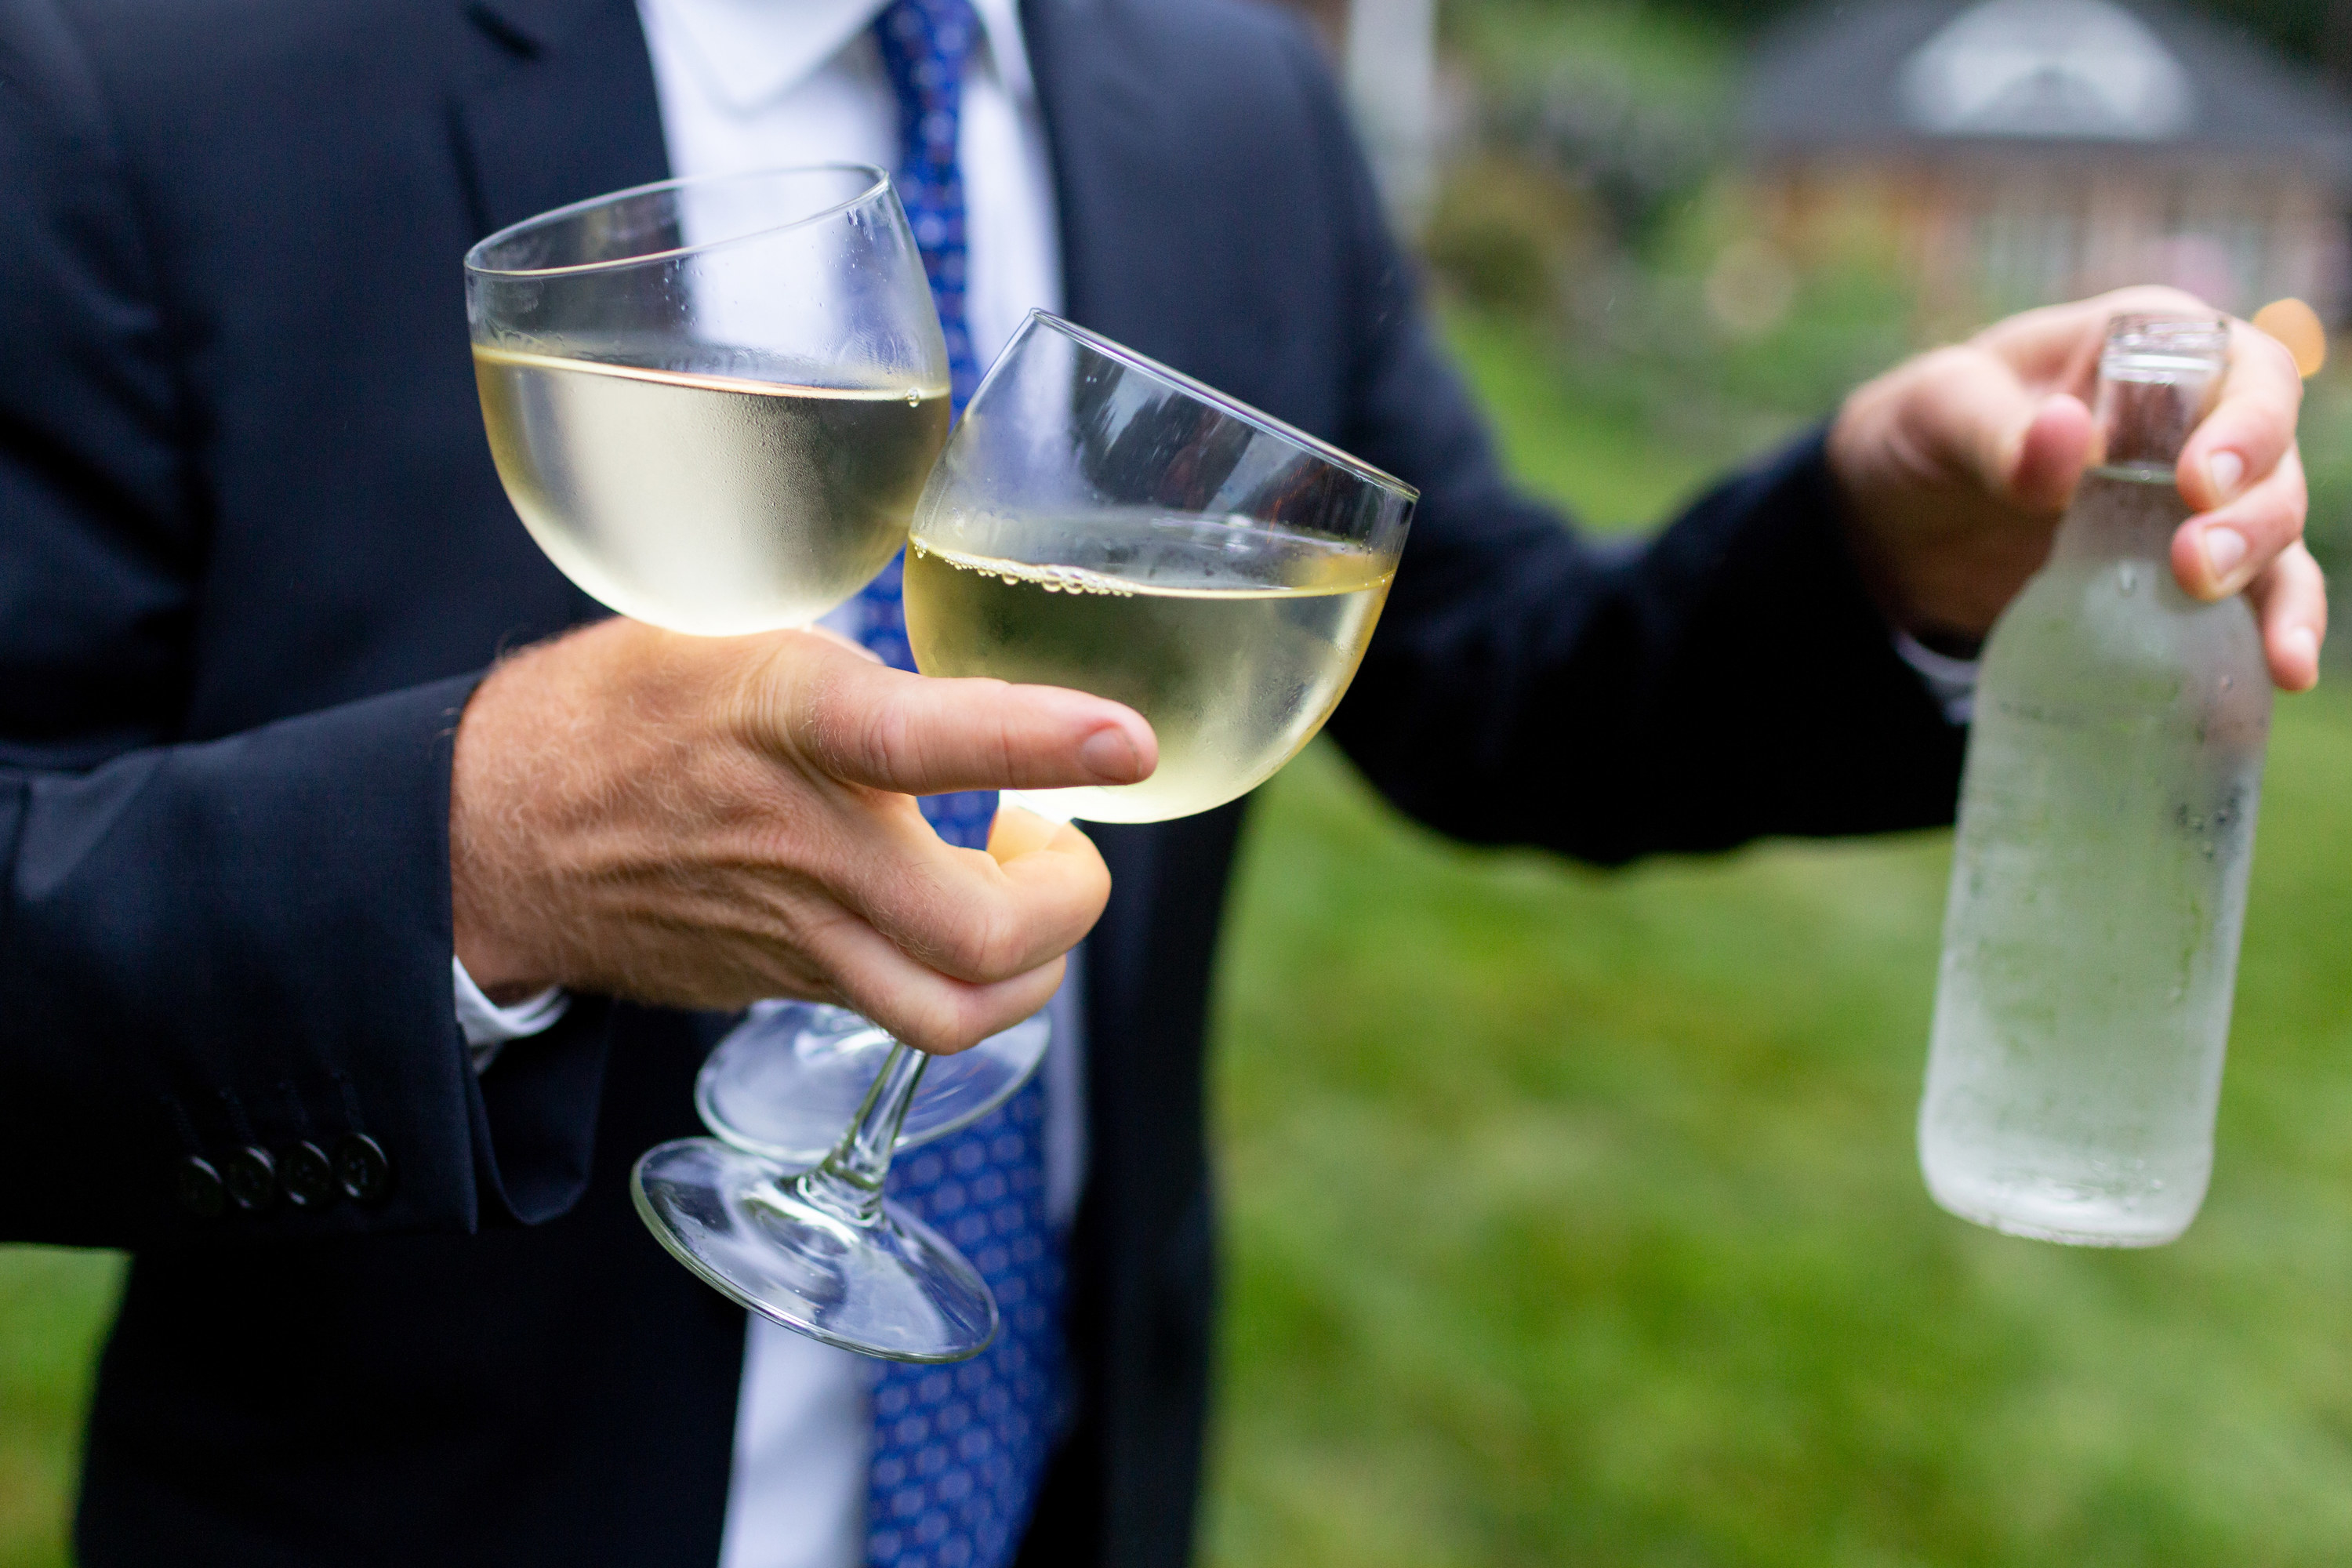 Person in a suit holding multiple glasses of wine